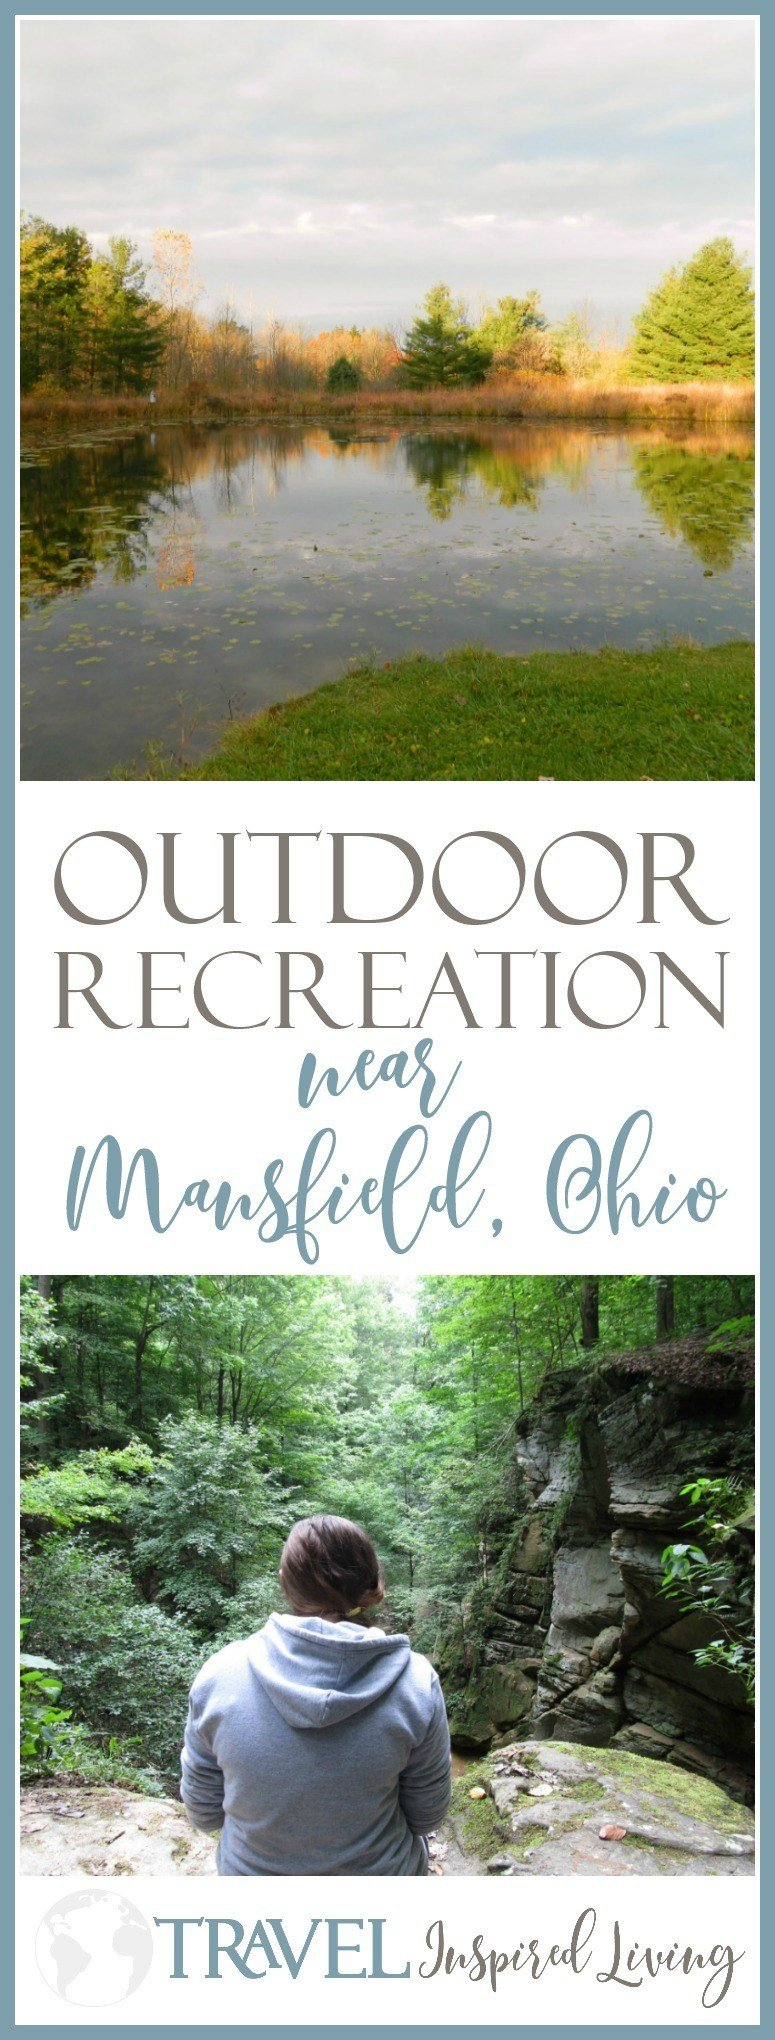 Ten favorite options for outdoor recreation near Mansfield